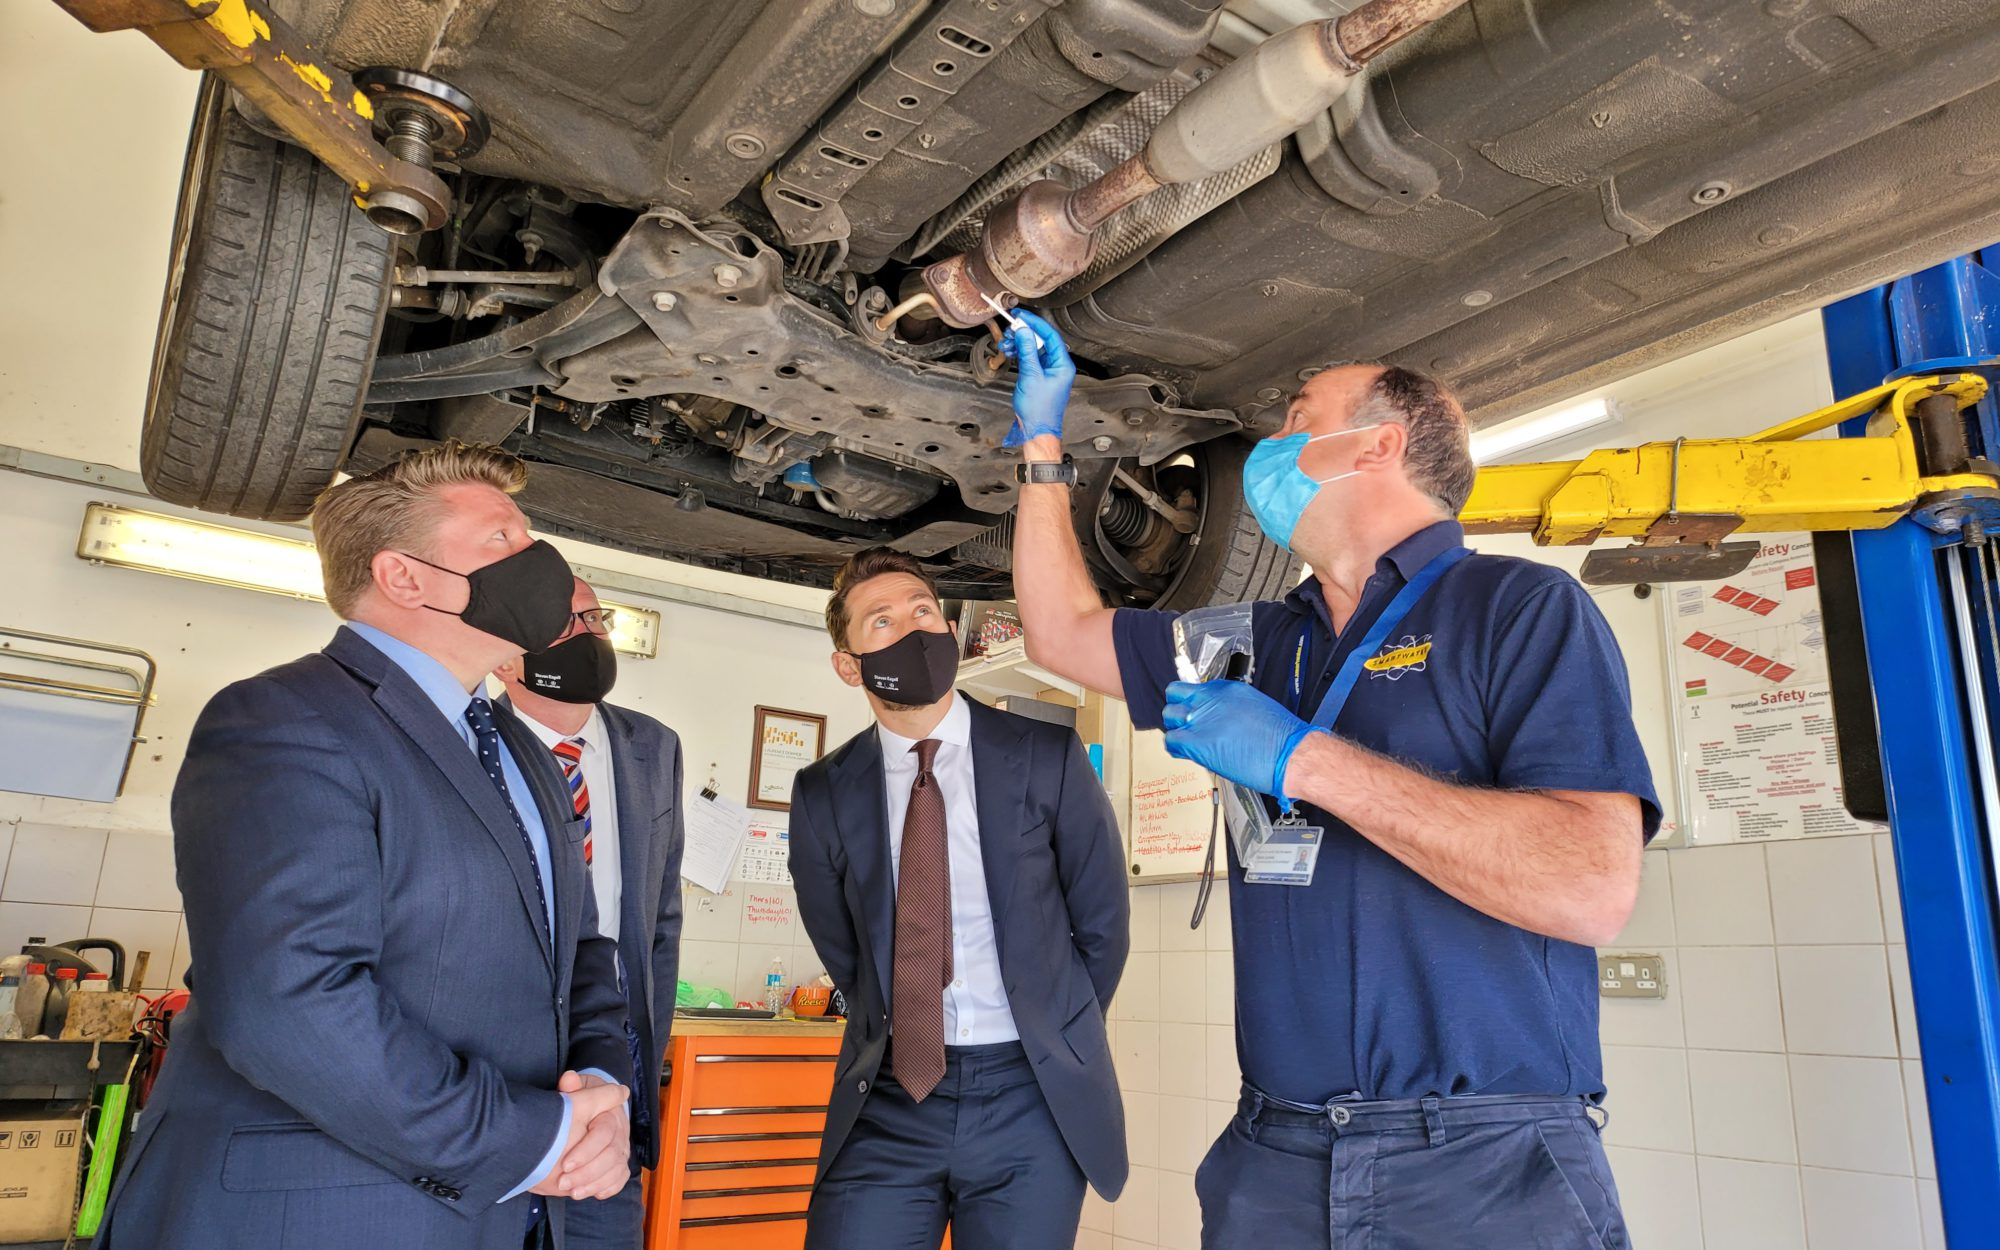 SmartTrace HT™ applied to combat to combat the increase in catalytic converter thefts